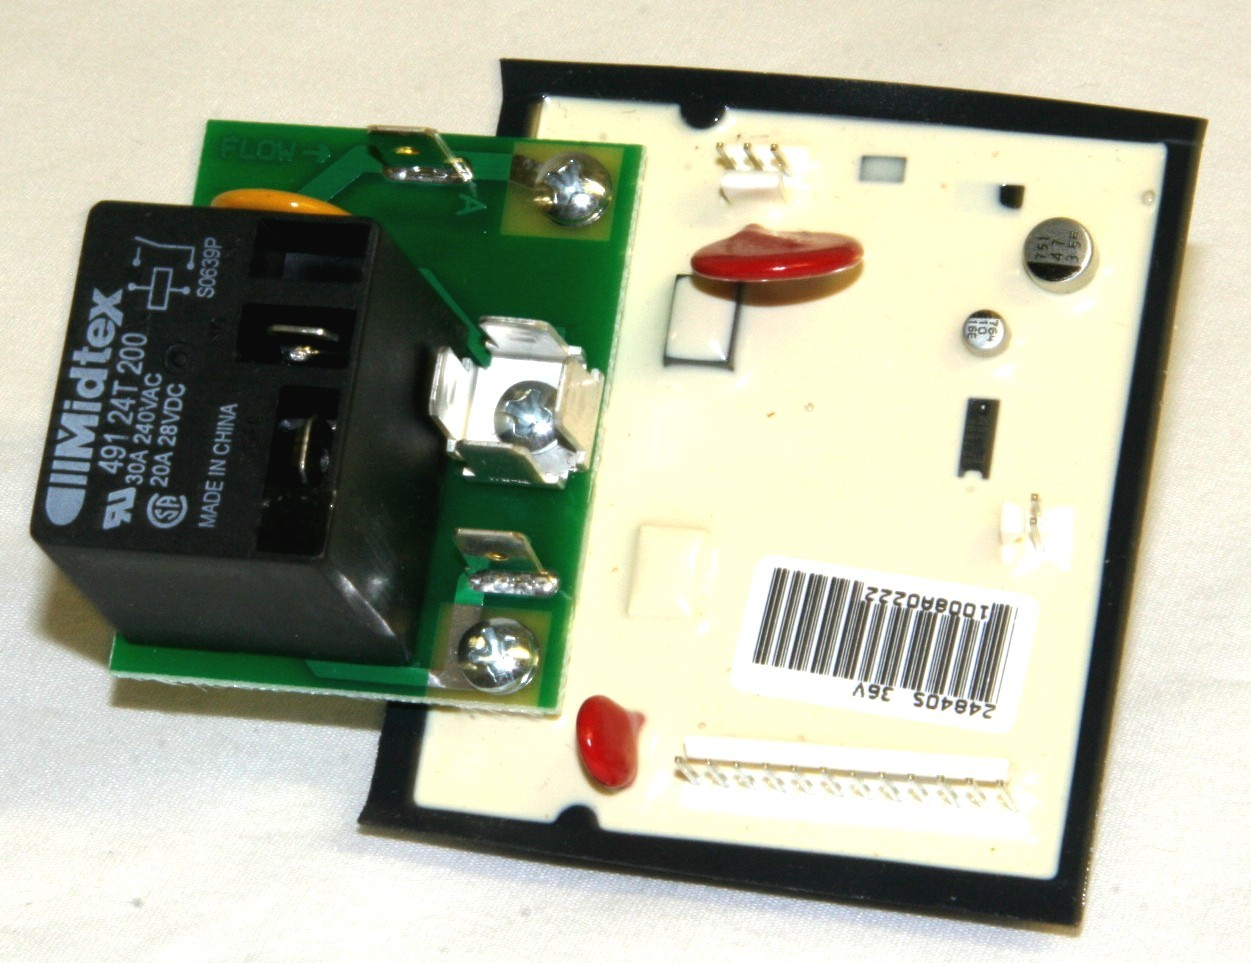 24840s for 36 volt chargers - t/d 79-303-15  replaces 09685s, 15005s,  15470s 18635s, 22790s uses relay asm 23385s manufacturer & part number club  car